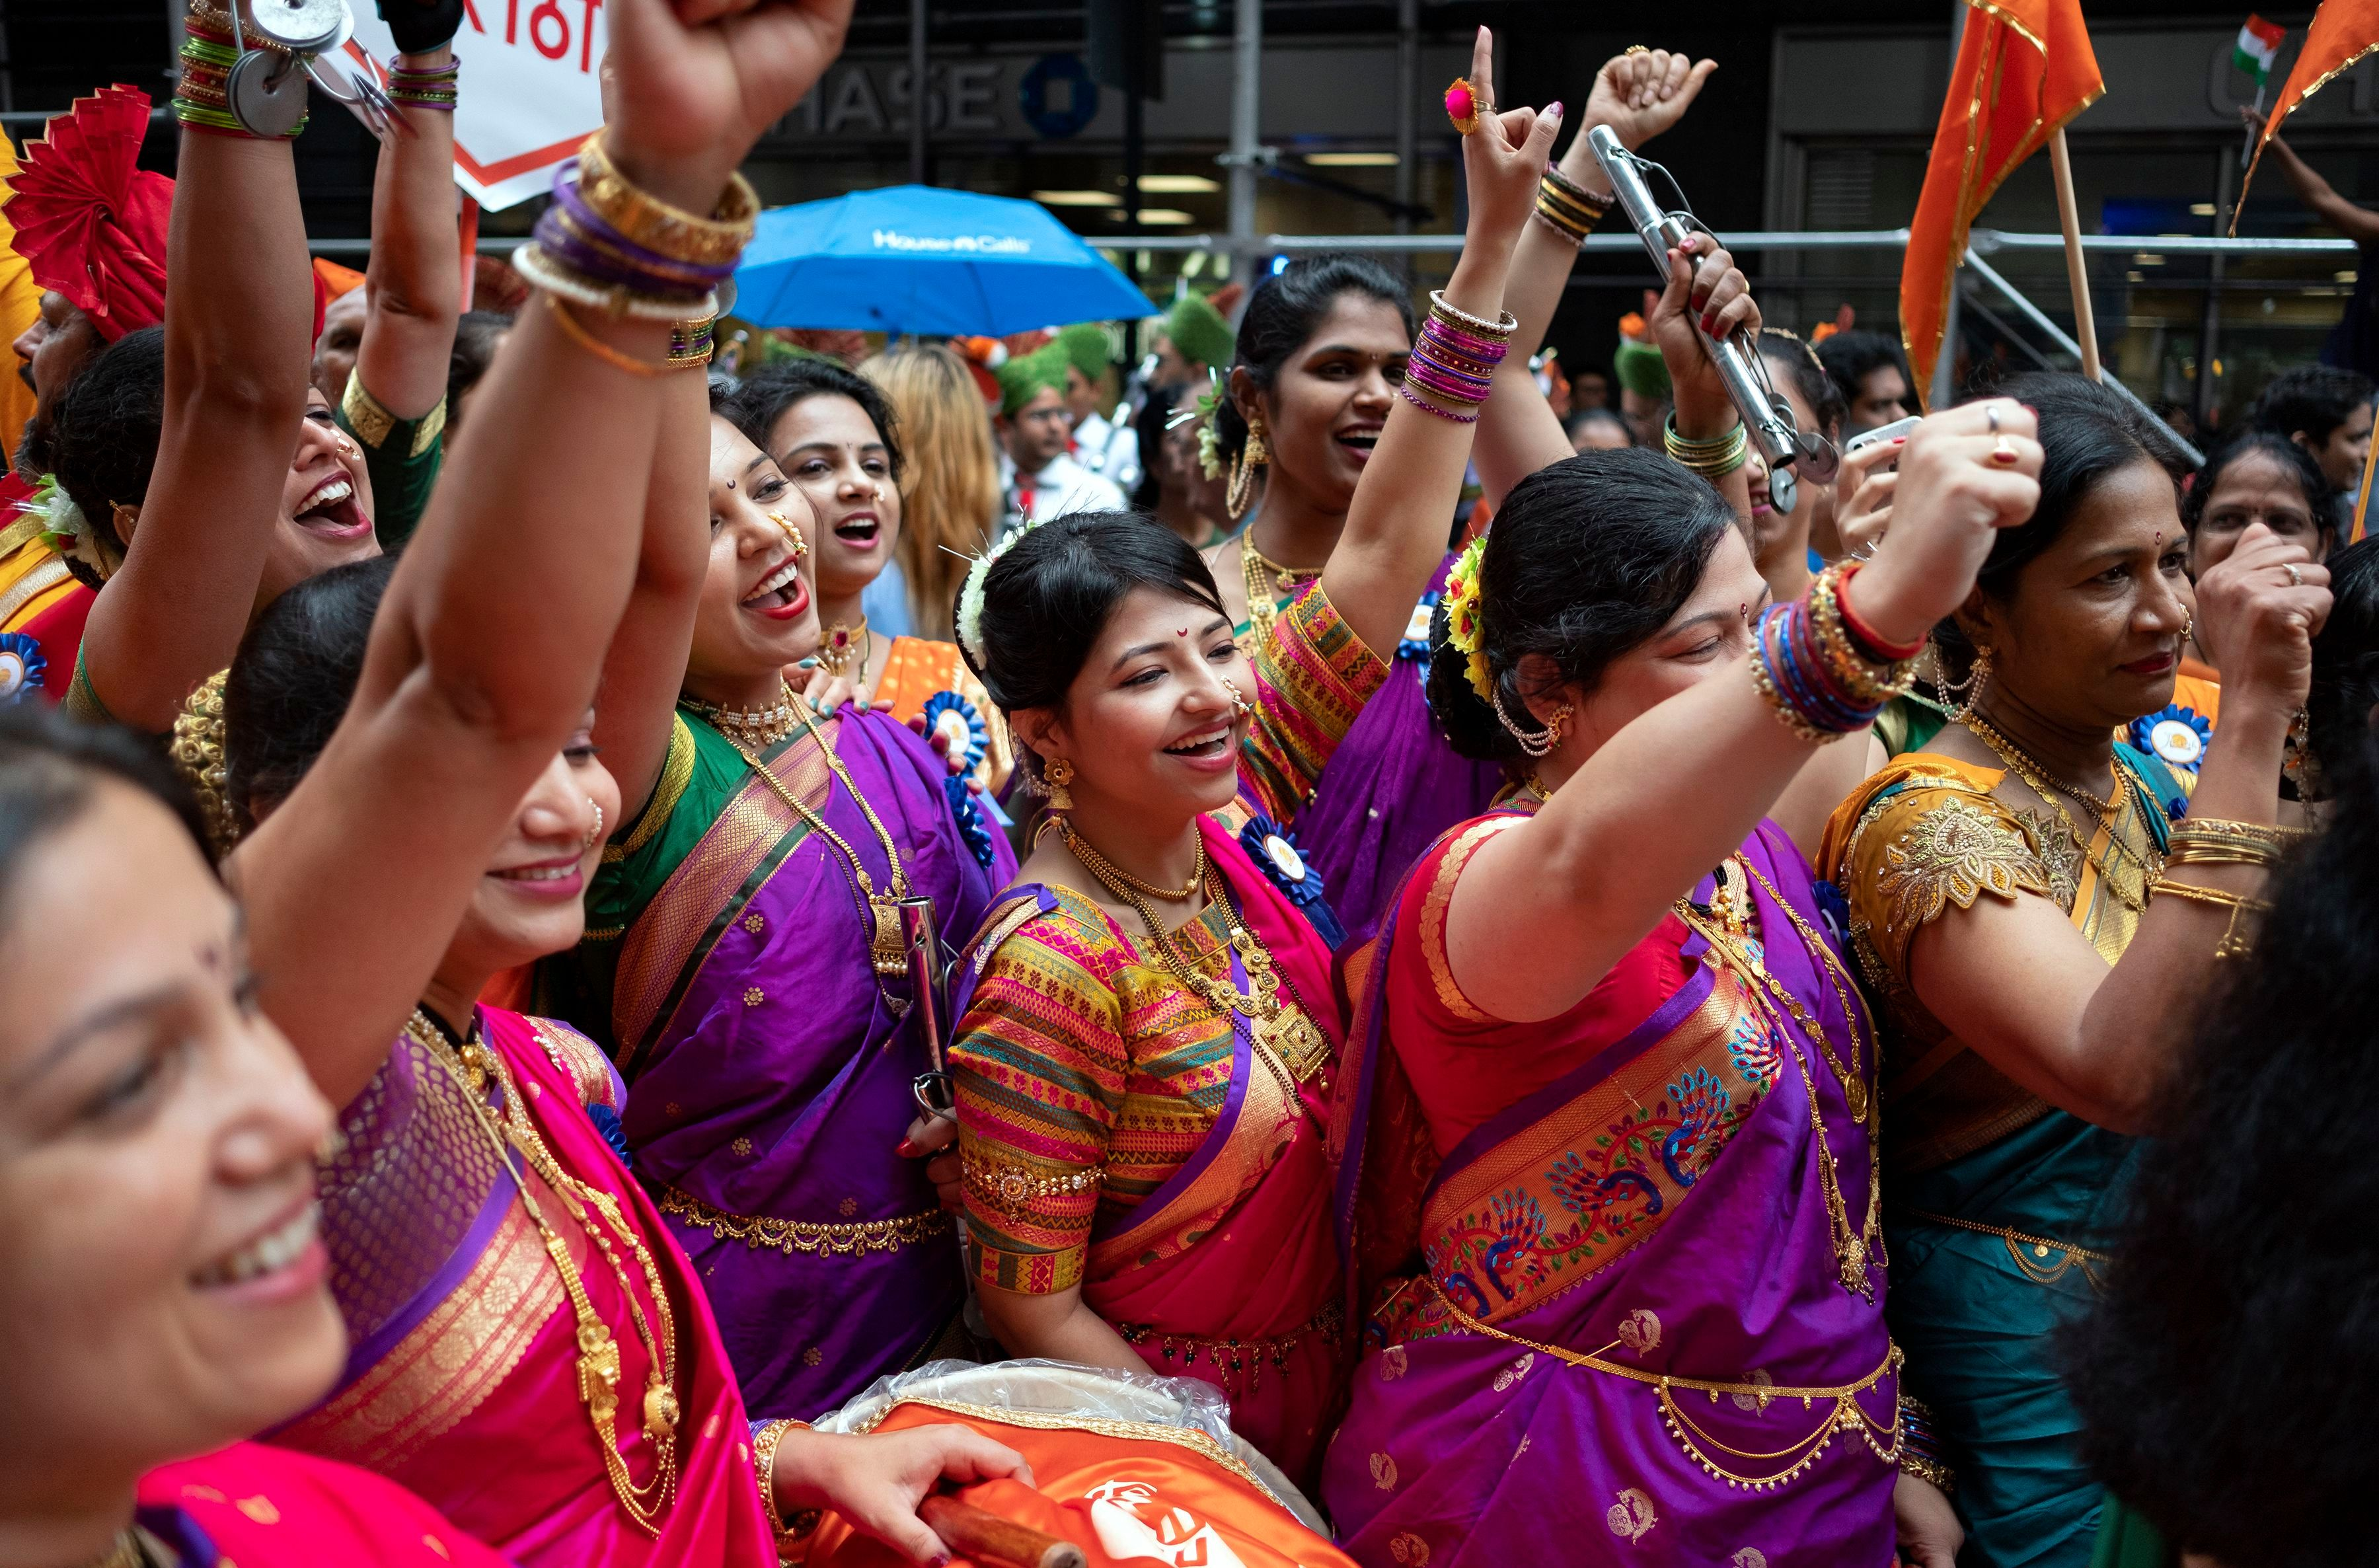 Participants in the India Day parade wearing colorful saris on Madison Avenue